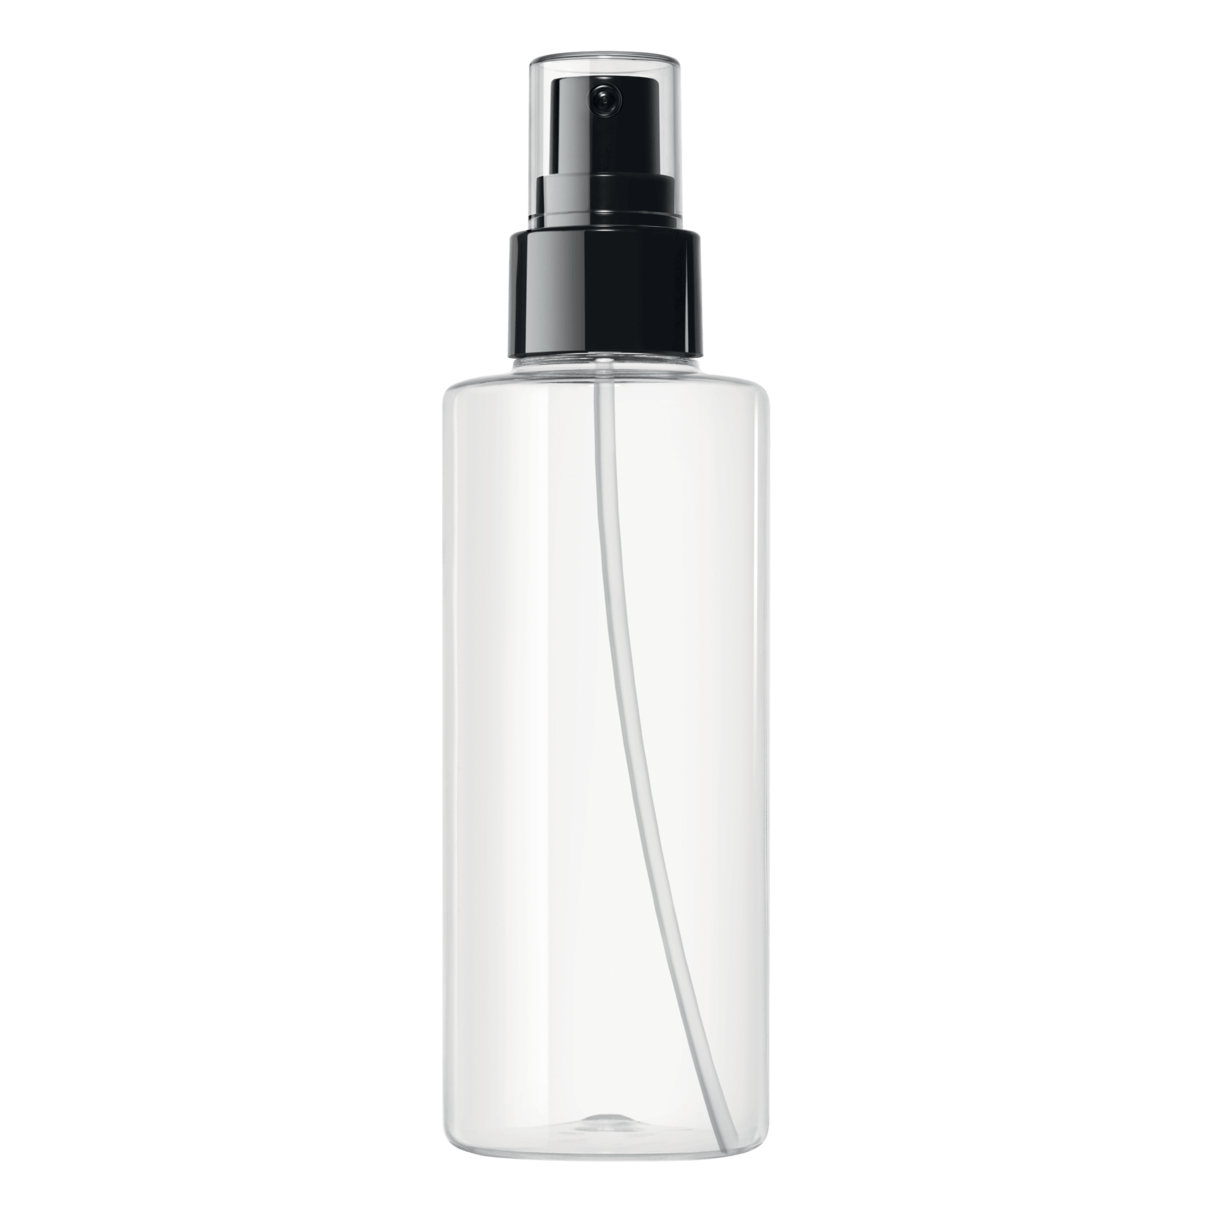 Spray Bottle Png, png collections at sccpre.cat.